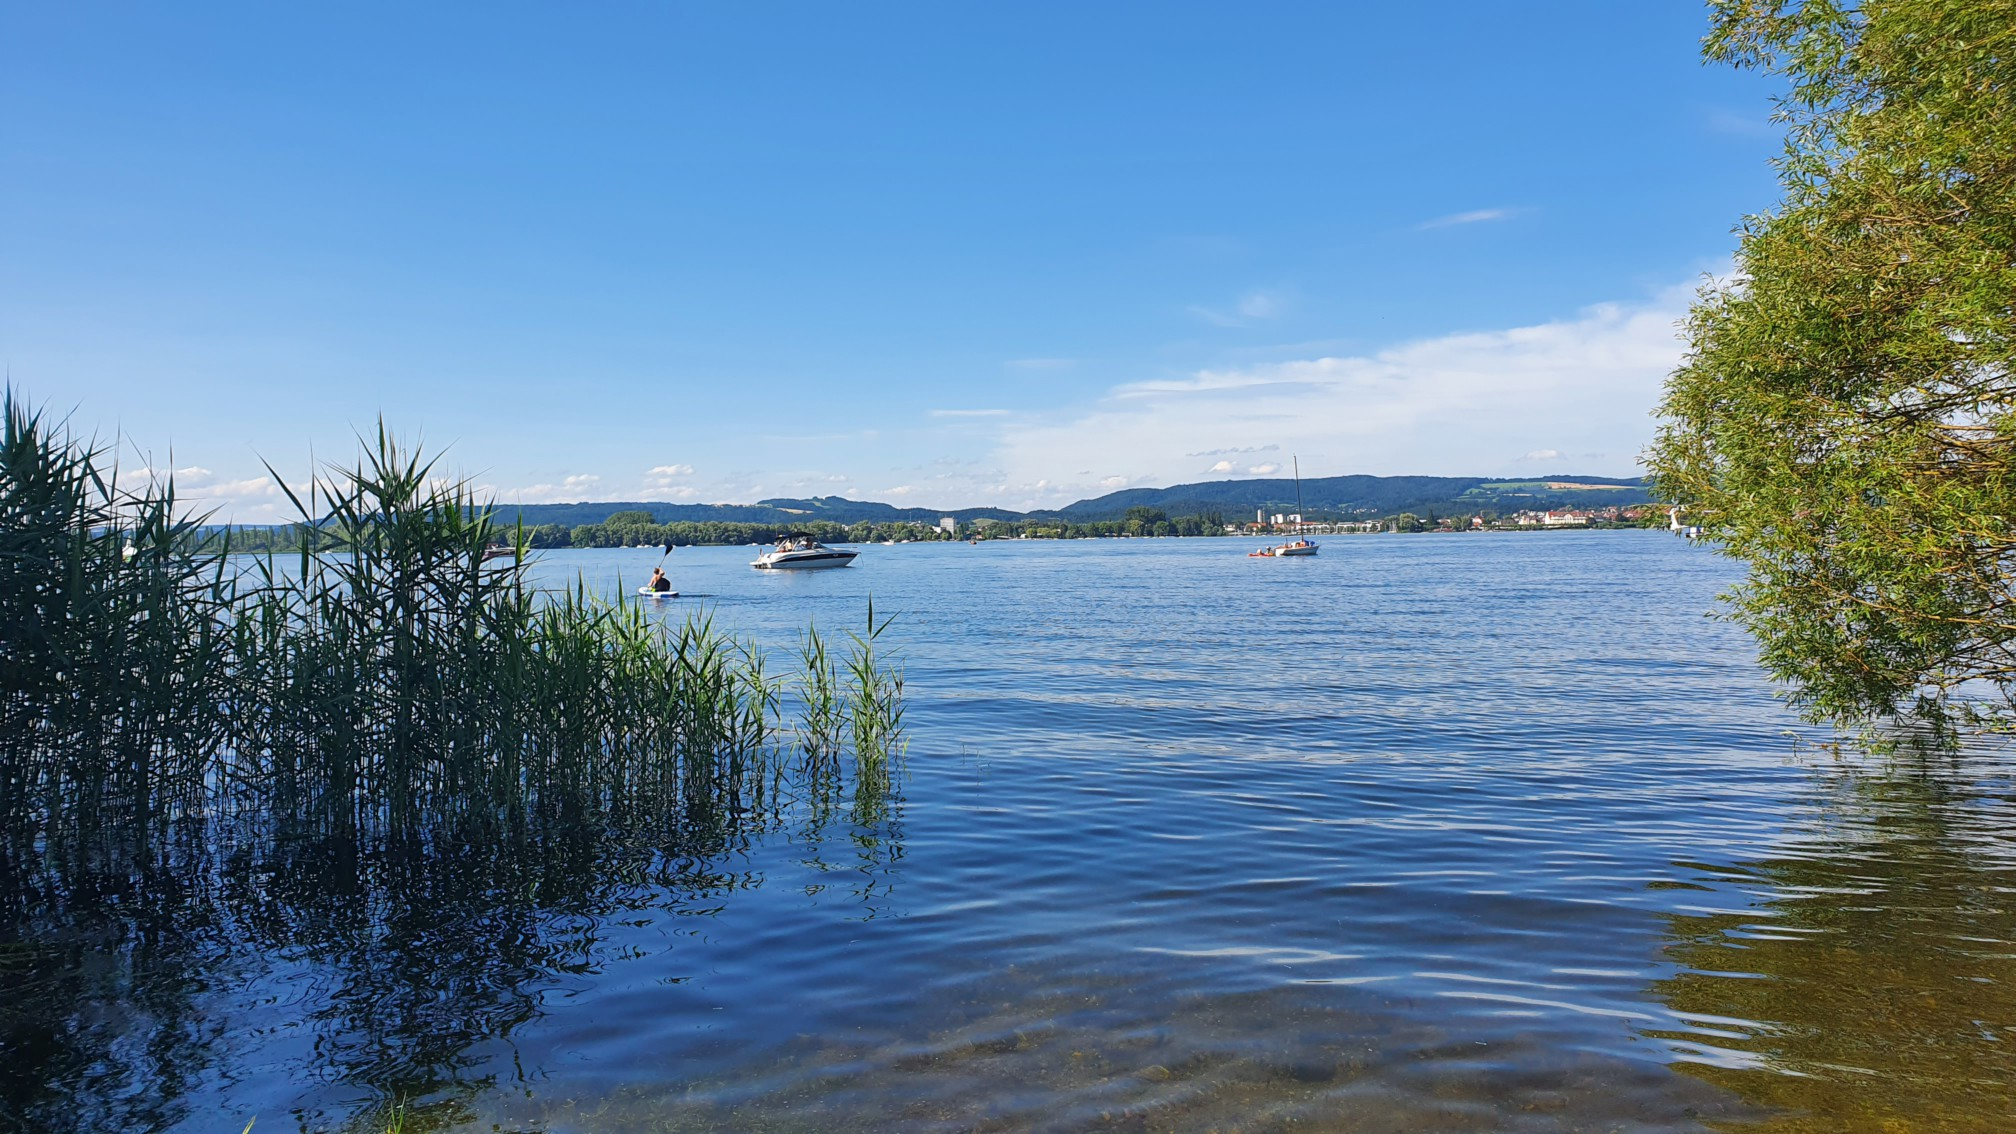 Moos am Bodensee